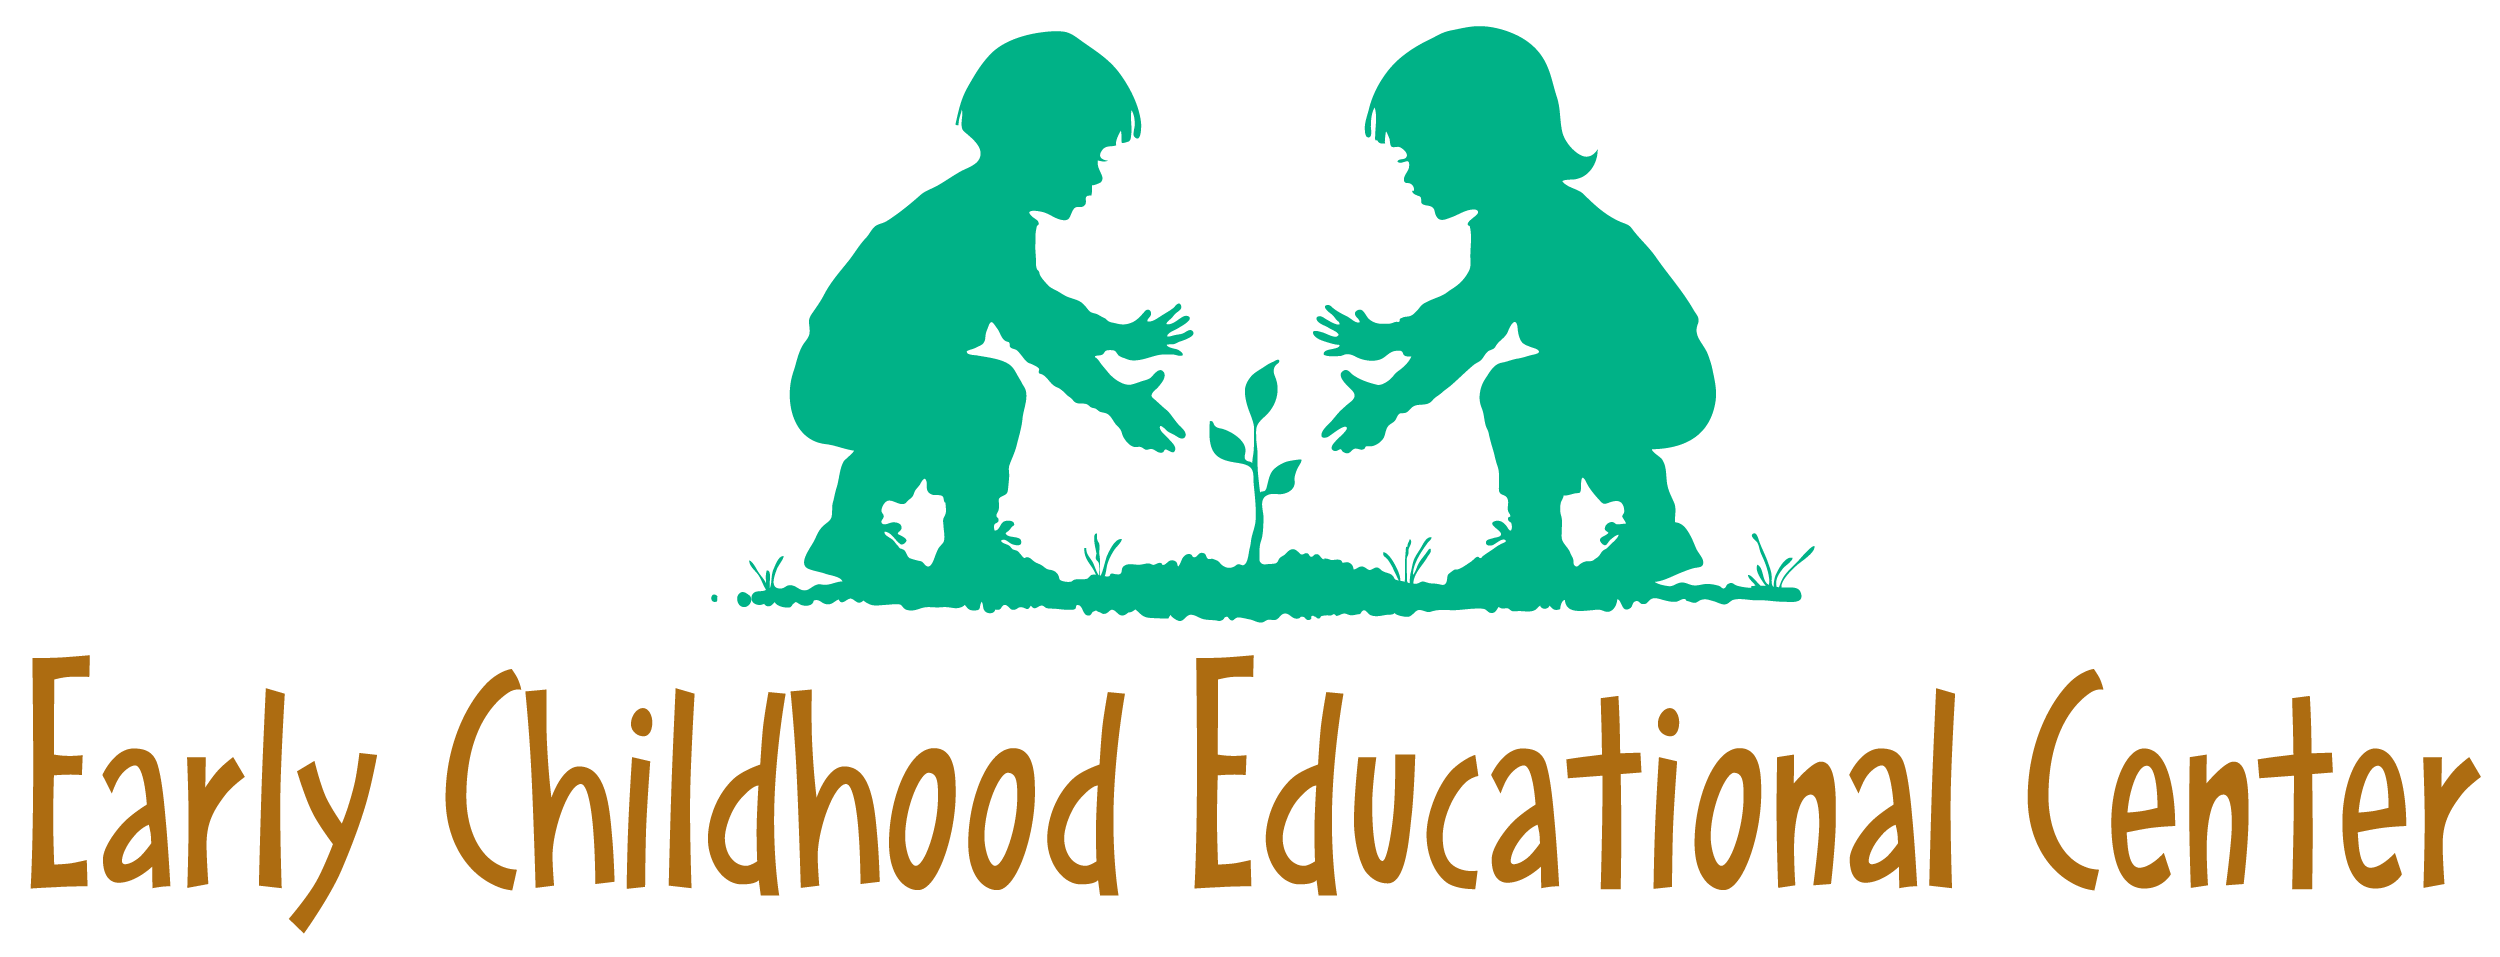 Early Childhood Educational Center (ECEC)